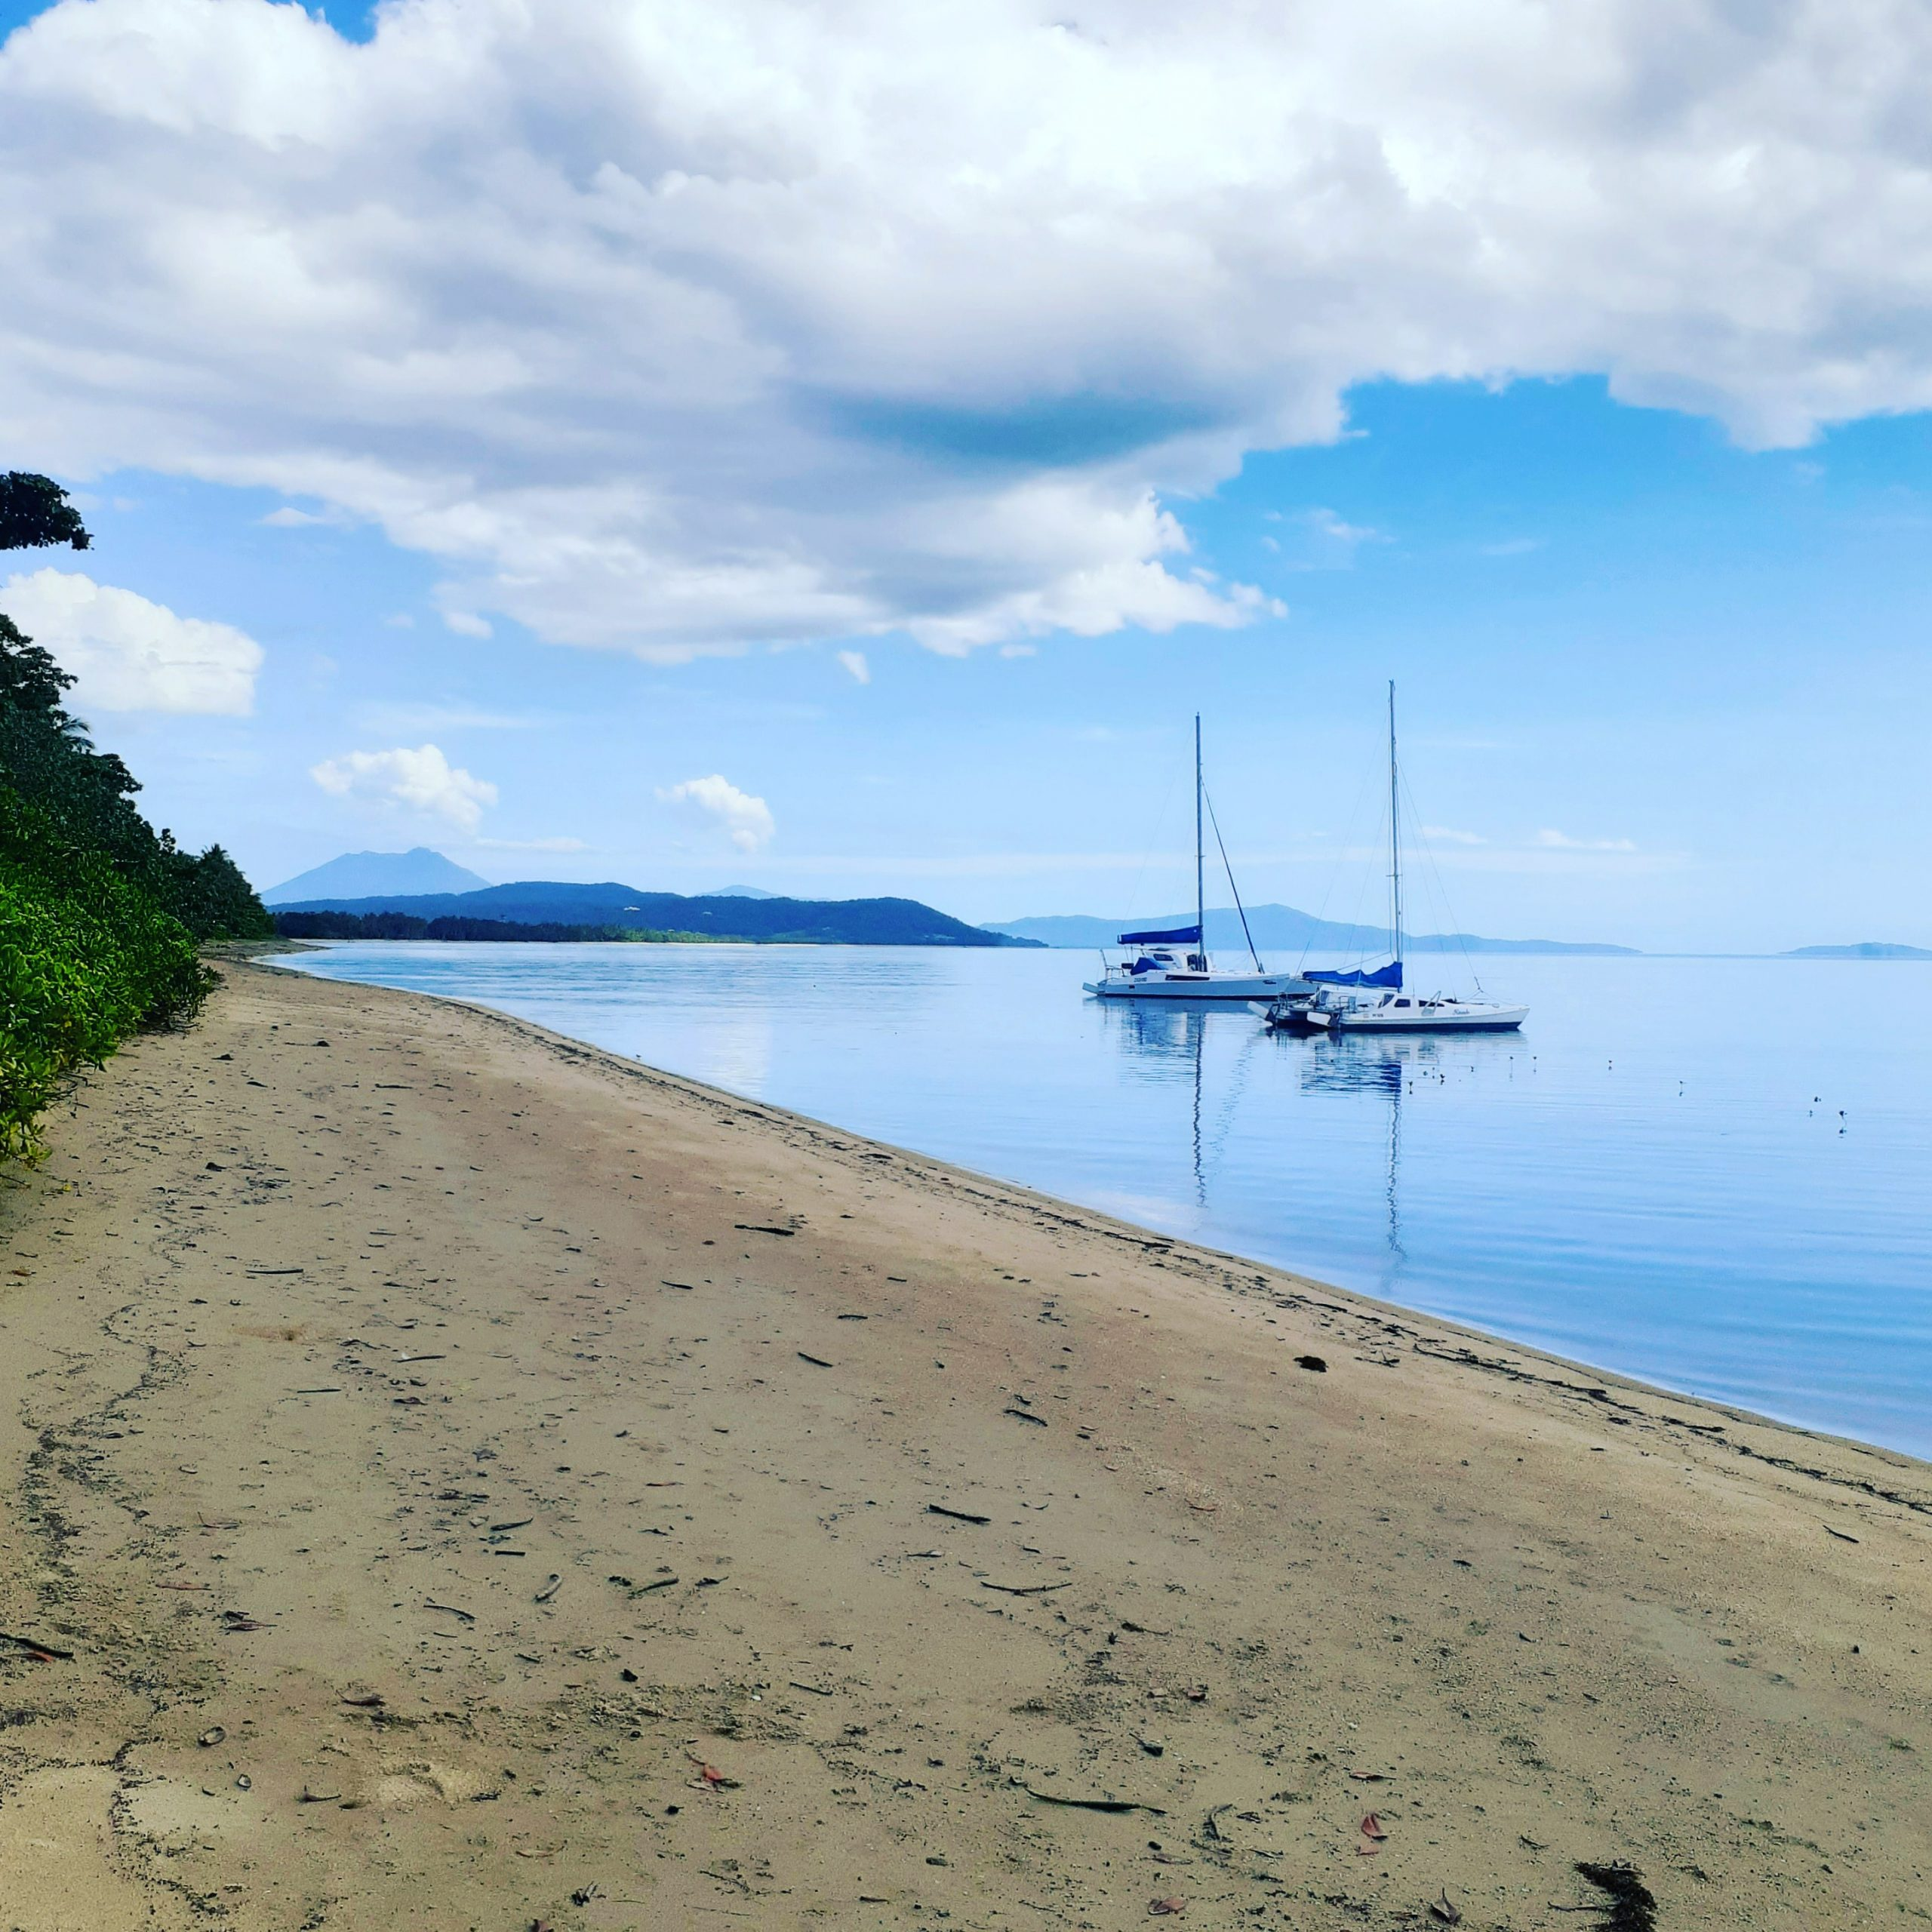 Check out our review of Cooya Beach near Port Douglas in Tropical North Queensland